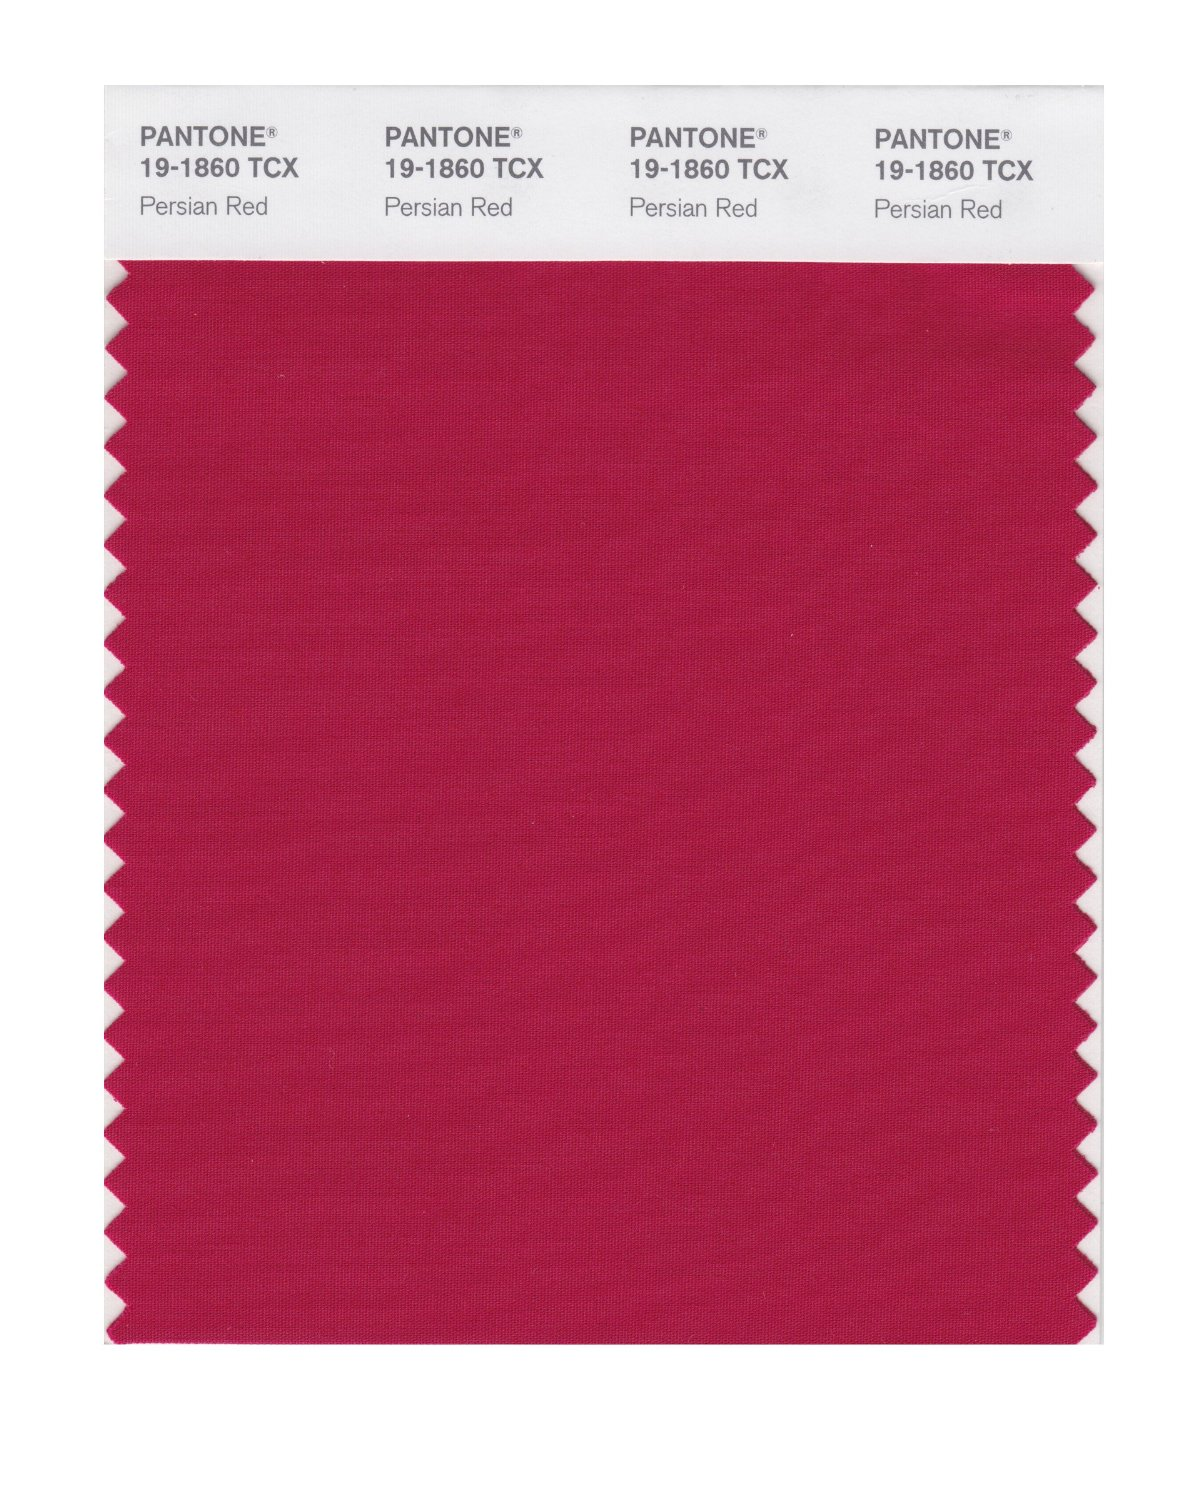 Pantone Smart Swatch 19-1860 Persian Red